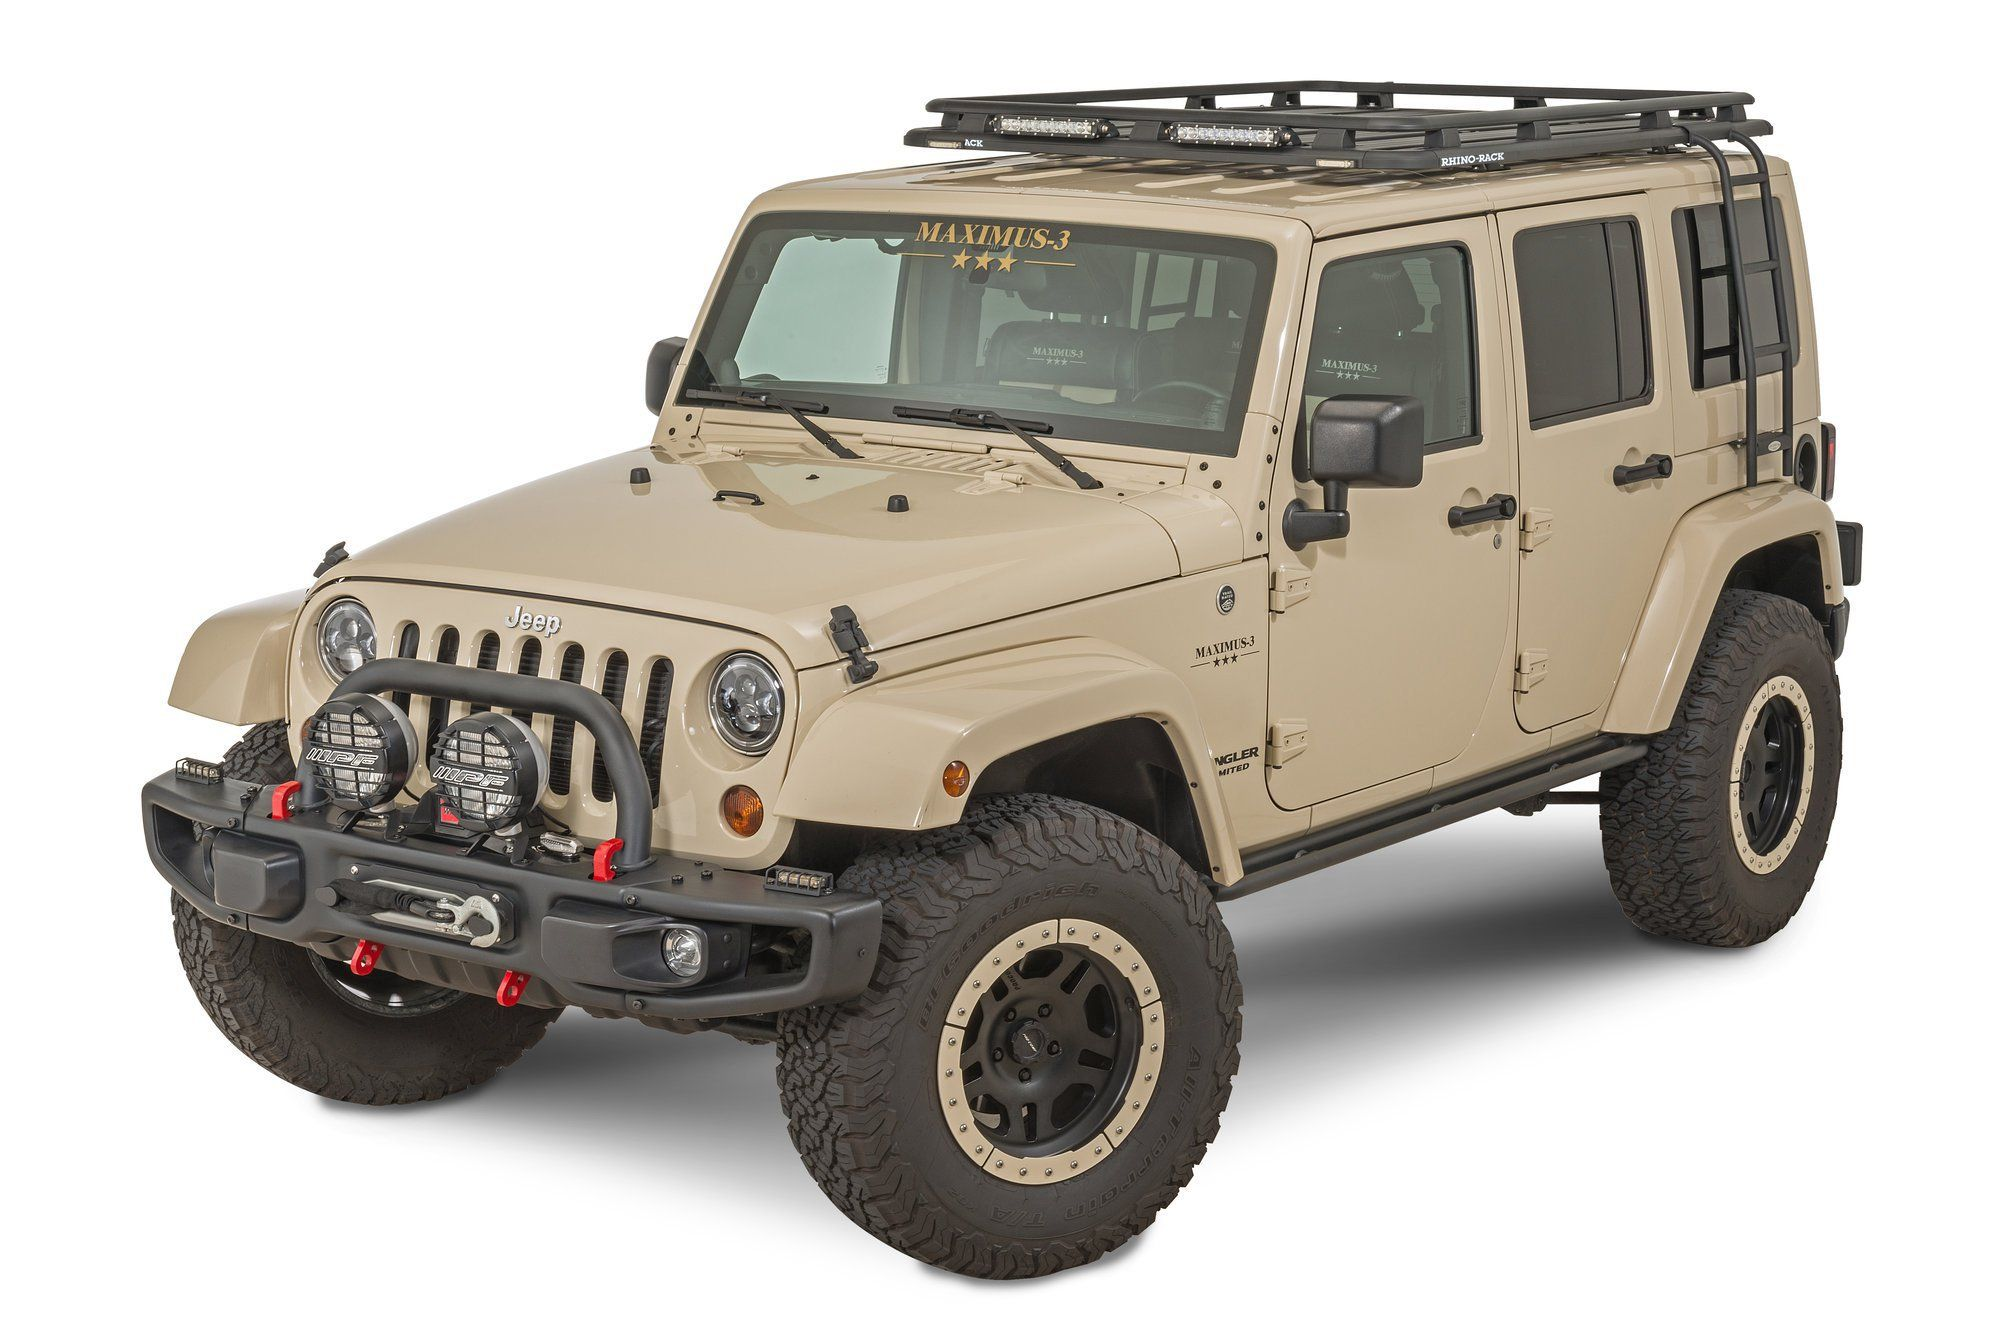 Awesome Roof Rack For Jeep Wrangler Unlimited Jeep Wrangler Unlimited Jeep Wrangler Jeep